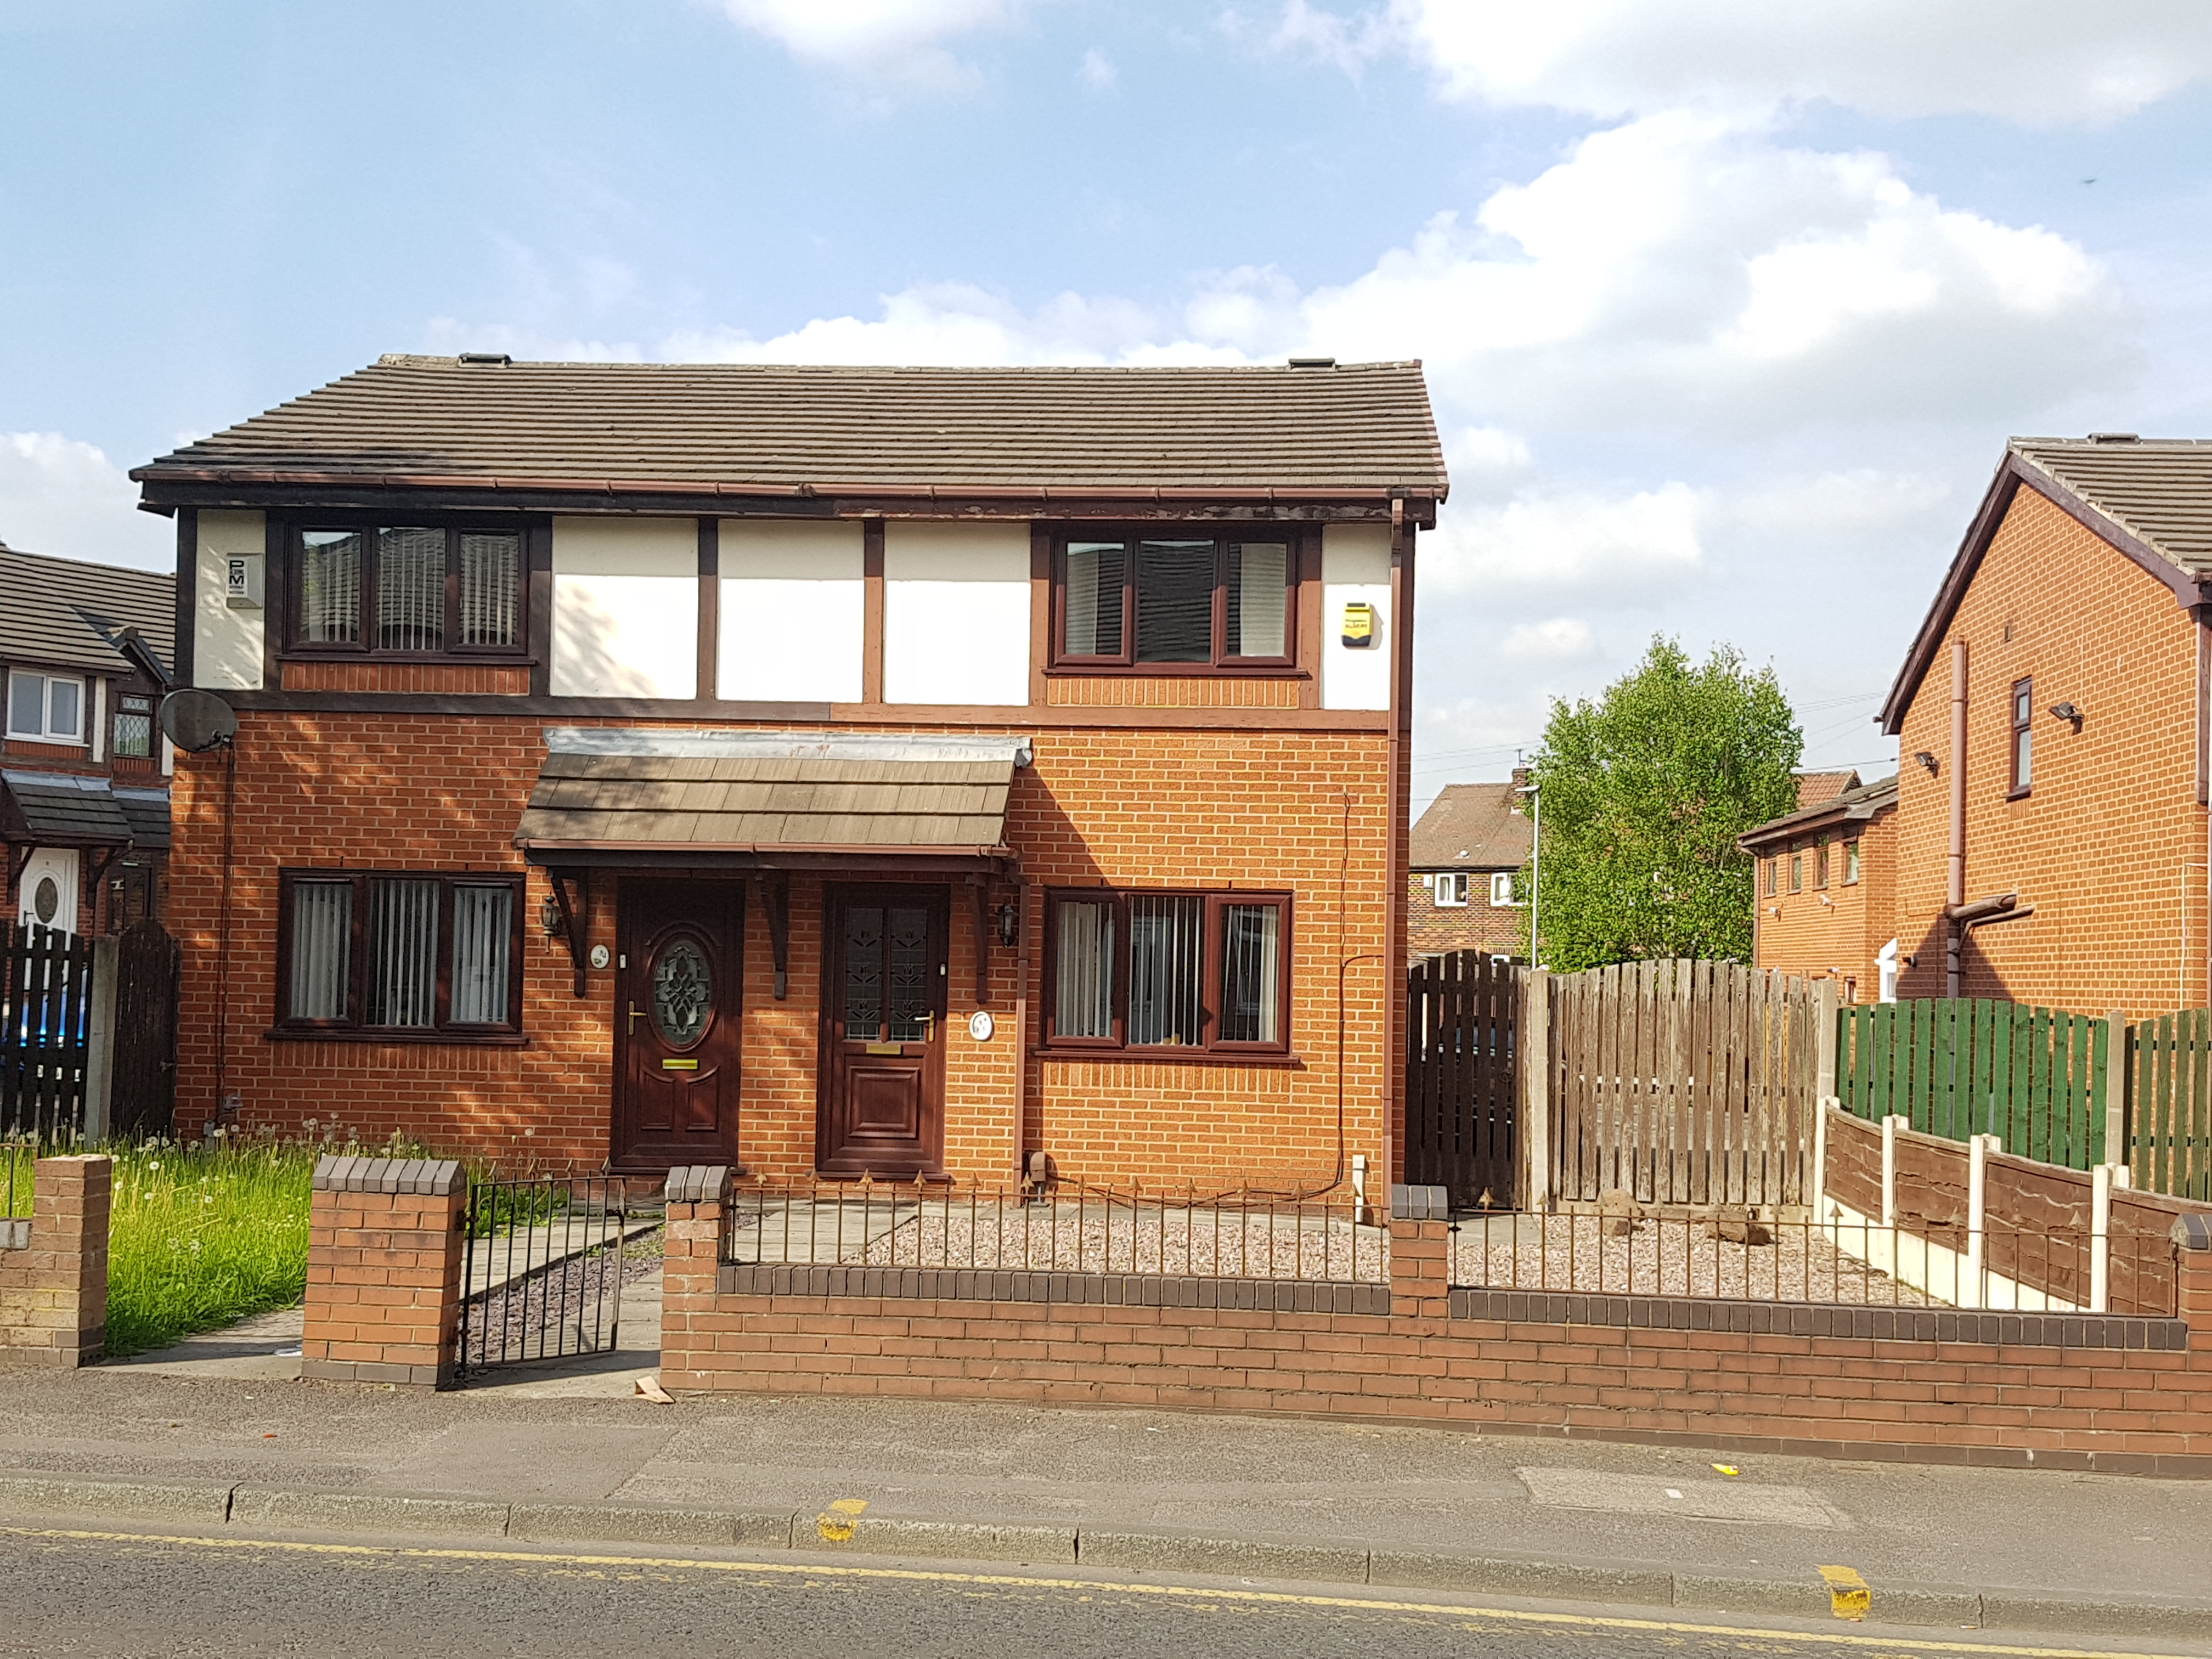 2 BEDROOM, WESTLEIGH LANE, WN7 5JE